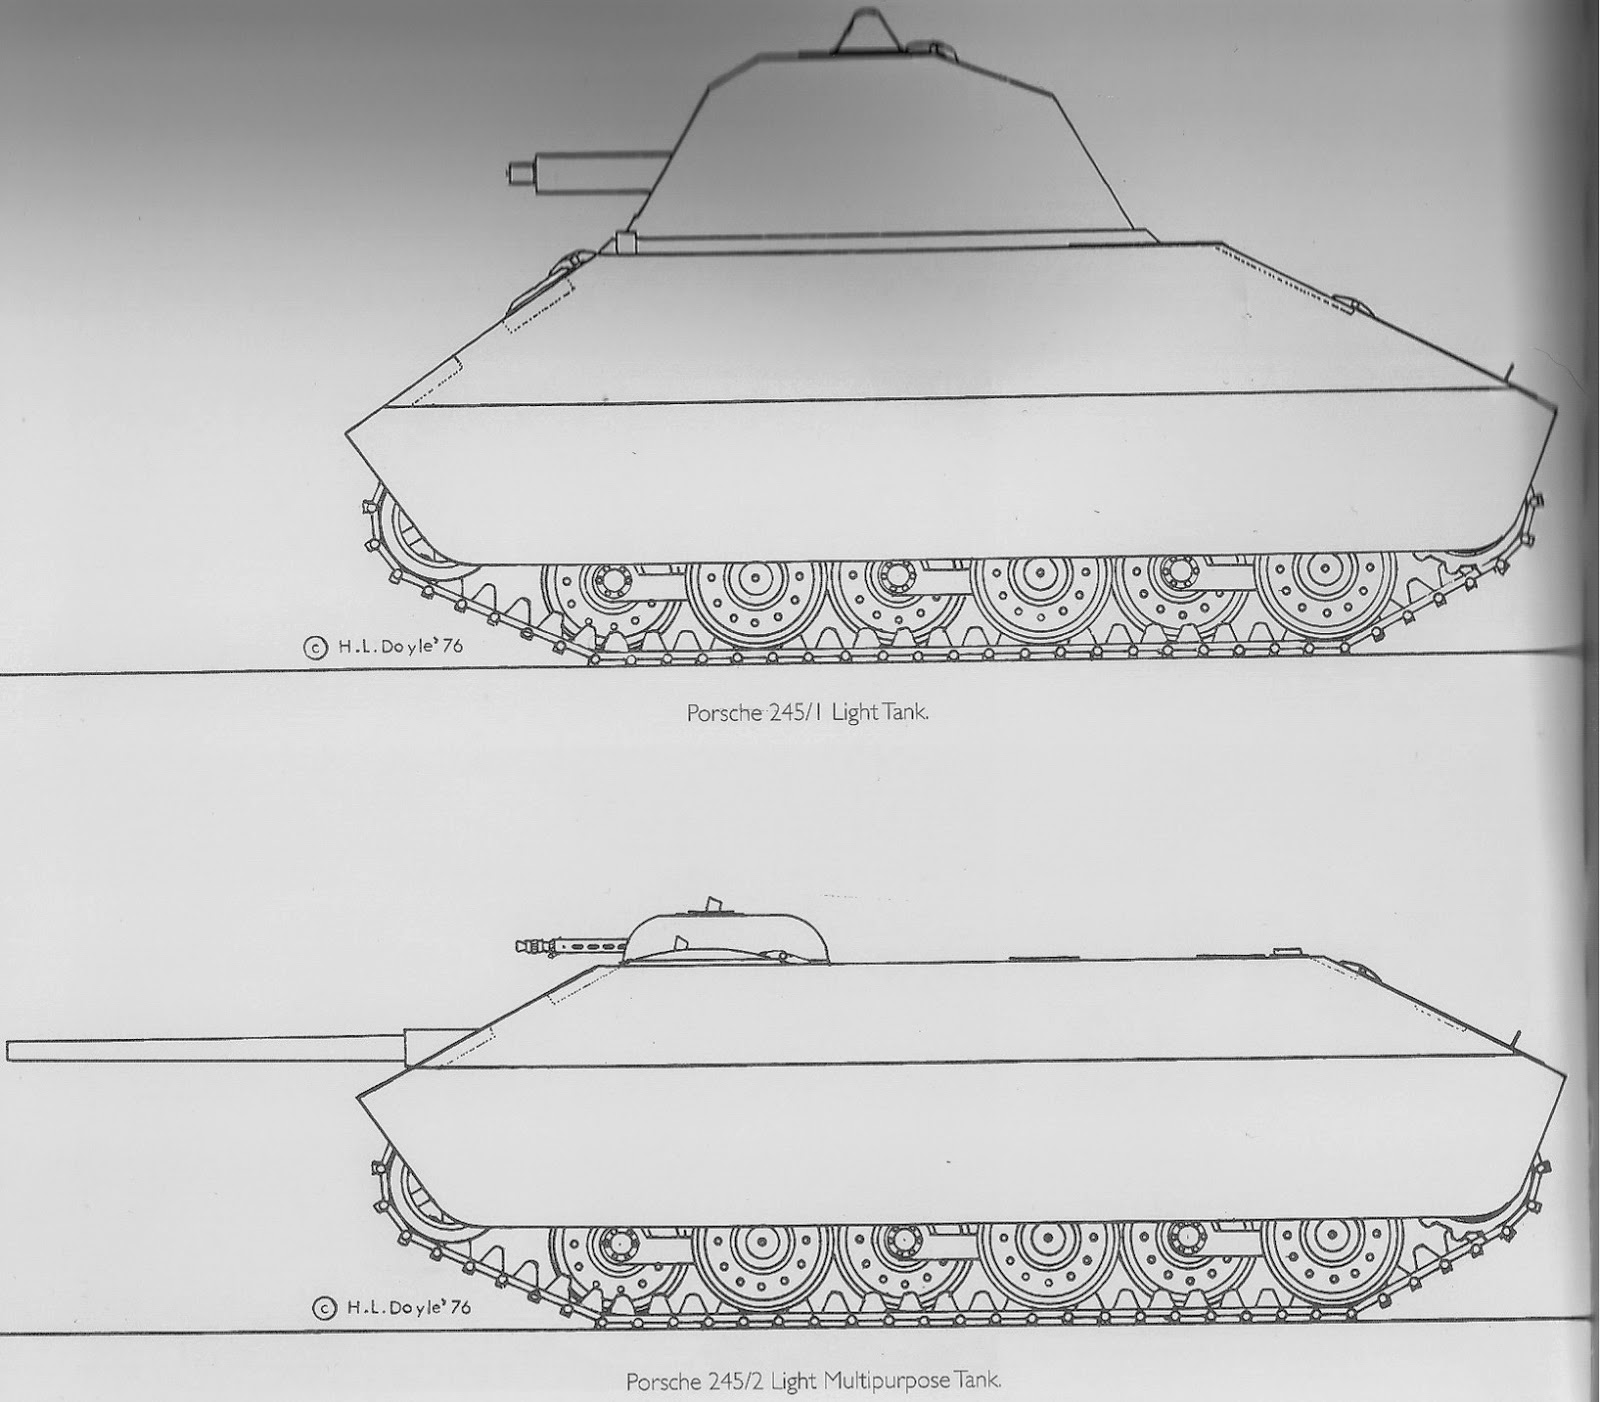 Zxhistory Maybach Engine Diagram In 1944 As The War Went On And Need Of More Effective Assault Guns Ensued Porsche Created A New Design Family 271 Ton Special Vehicle Vi